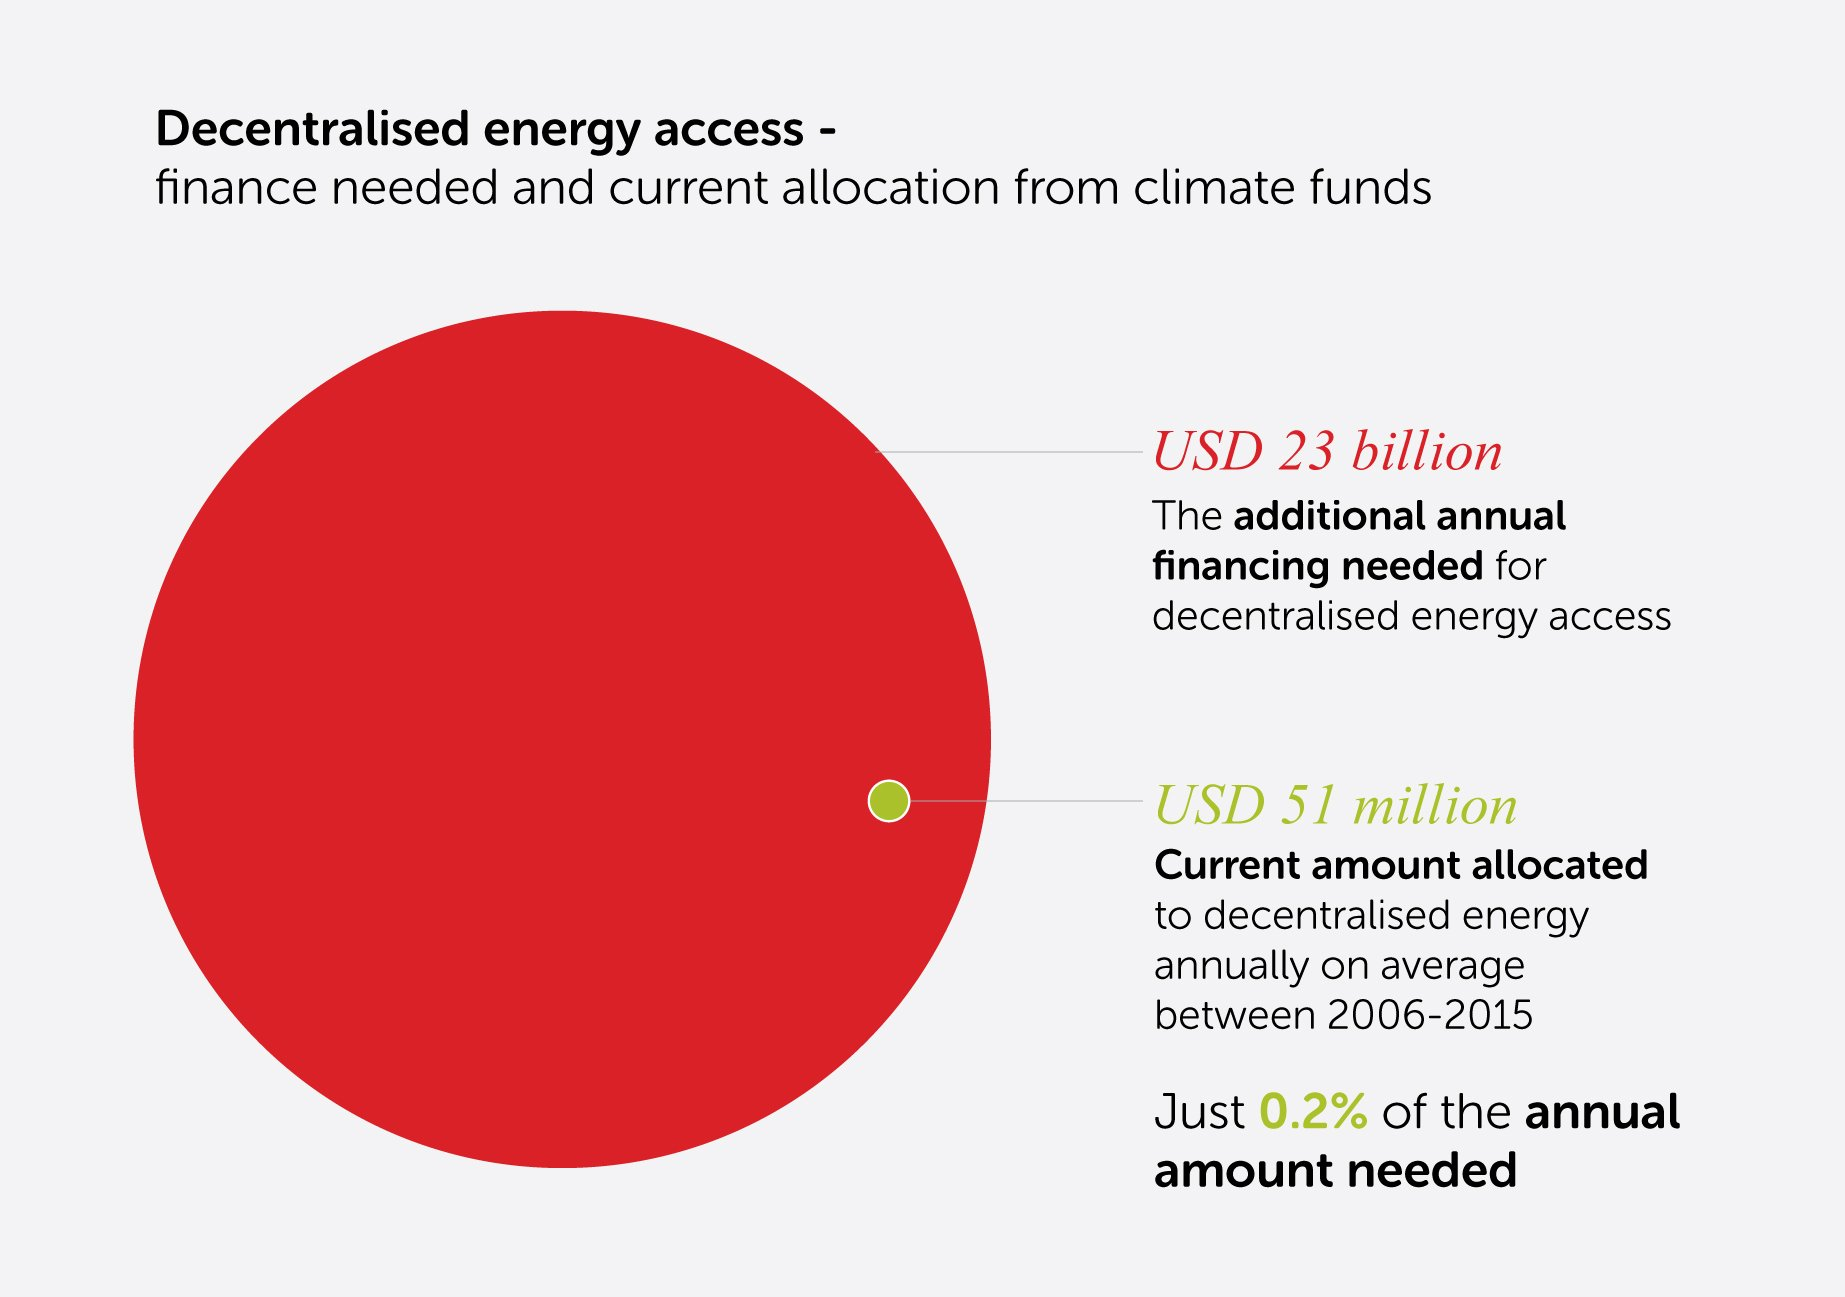 An extra $23bn per year is needed for deentralised #energyaccess - only 0.2% is currently being allocated, says Best #COP22 @hivos https://t.co/79OZFkgK7V